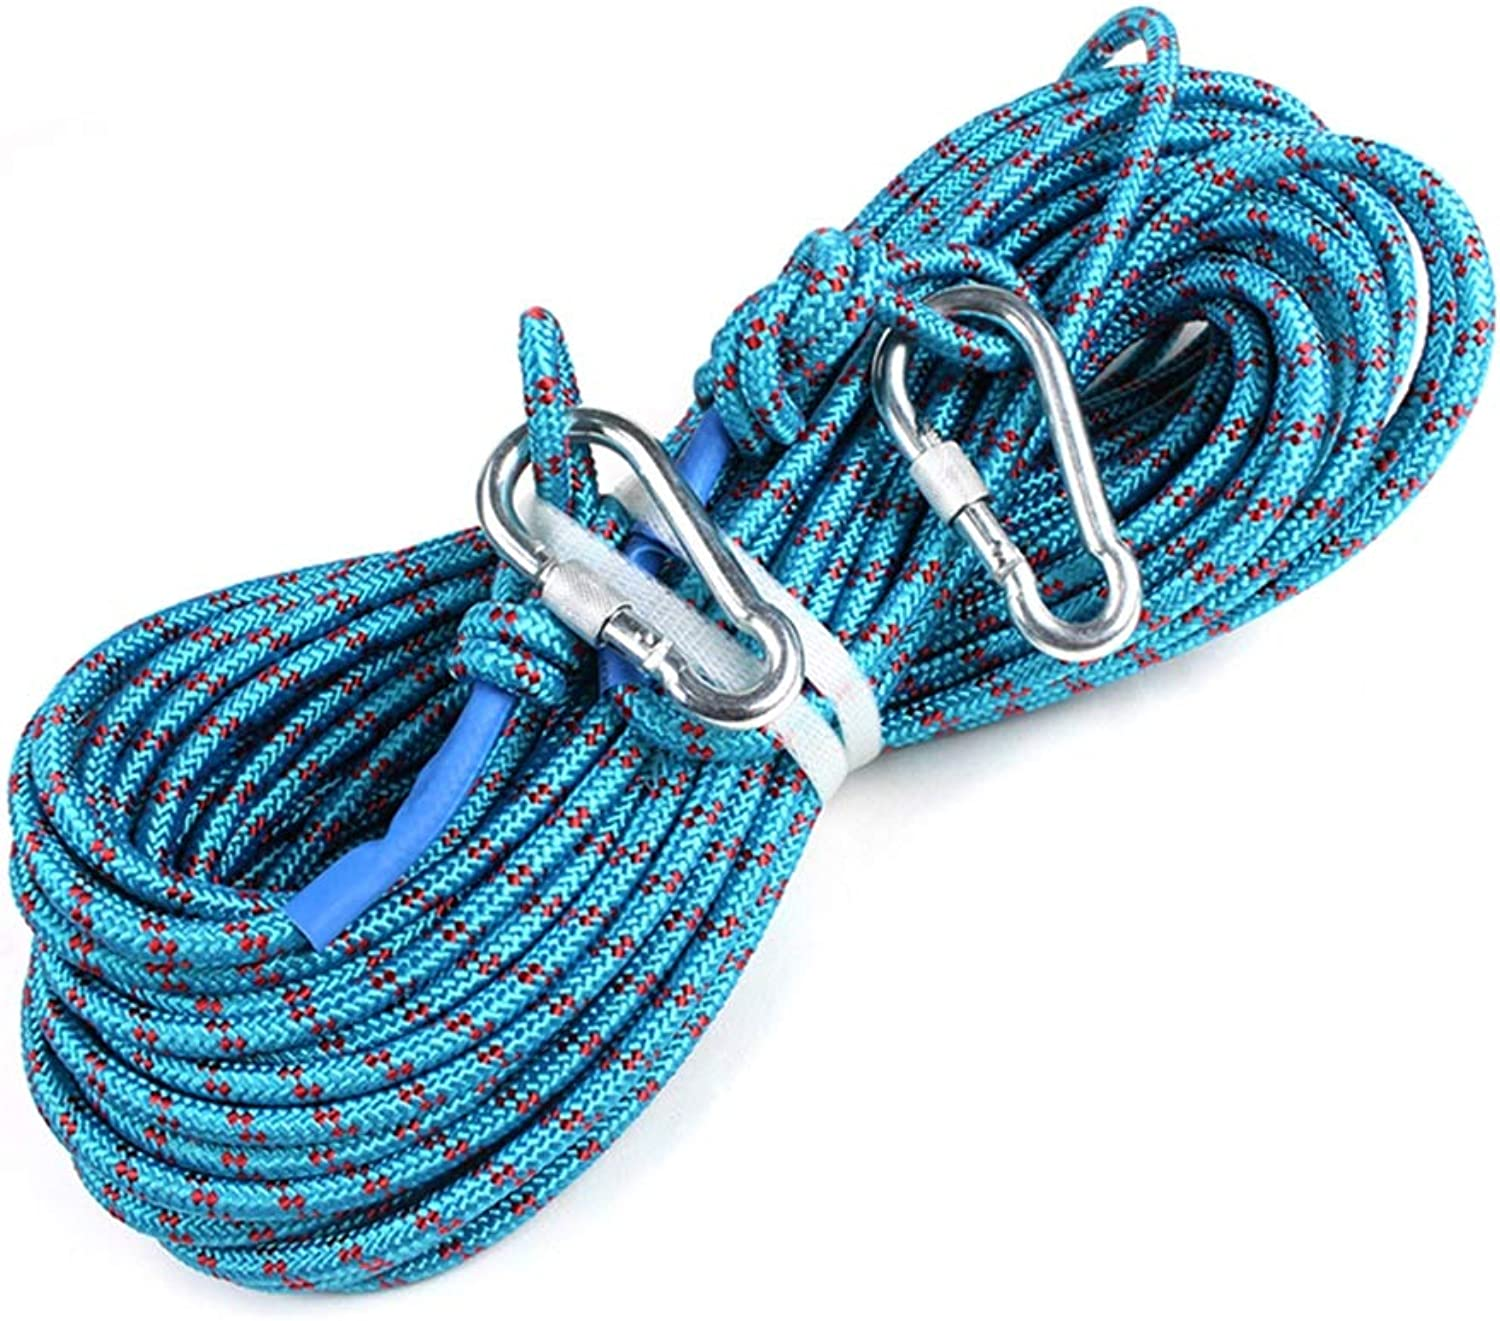 Static Climbing Rope 8mm Diameter Steel Wire Outdoor Climbing Rope Safety Rope Wear Resistant Rope Survival Equipment Supplies,40M